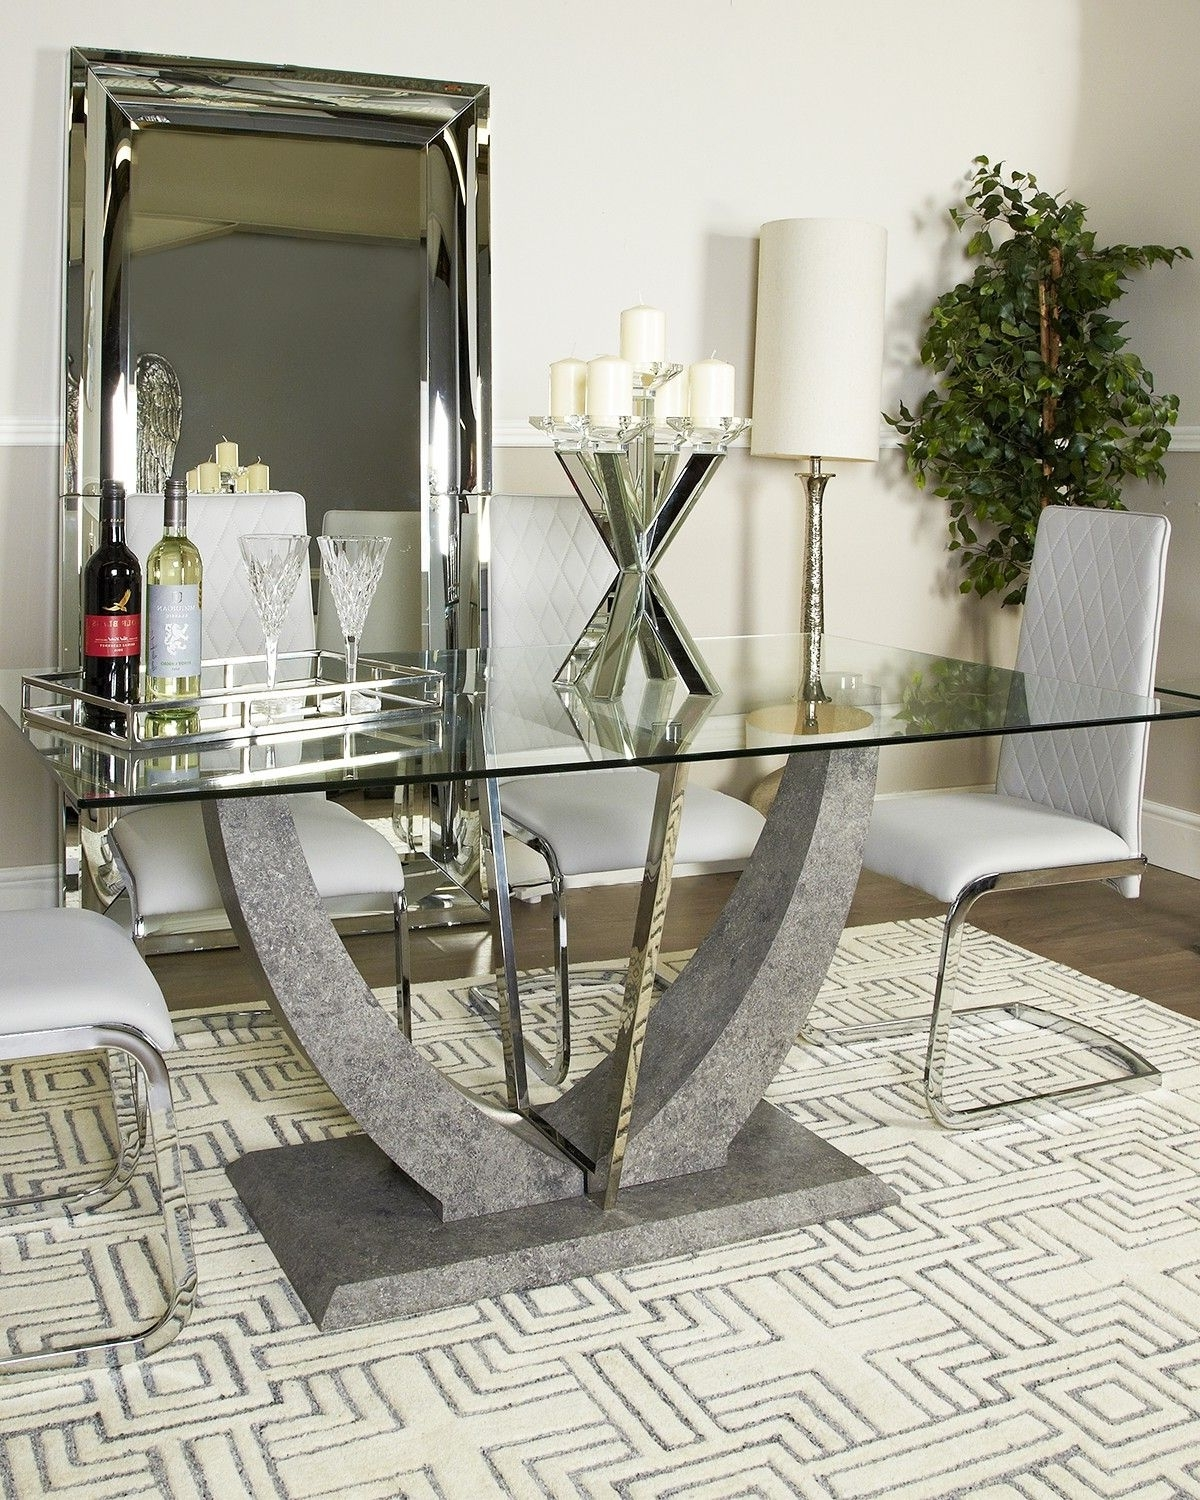 Leo Grey Glass Top Chrome Dining Table And Chairs Set Pertaining To Fashionable Glass And Chrome Dining Tables And Chairs (View 16 of 25)